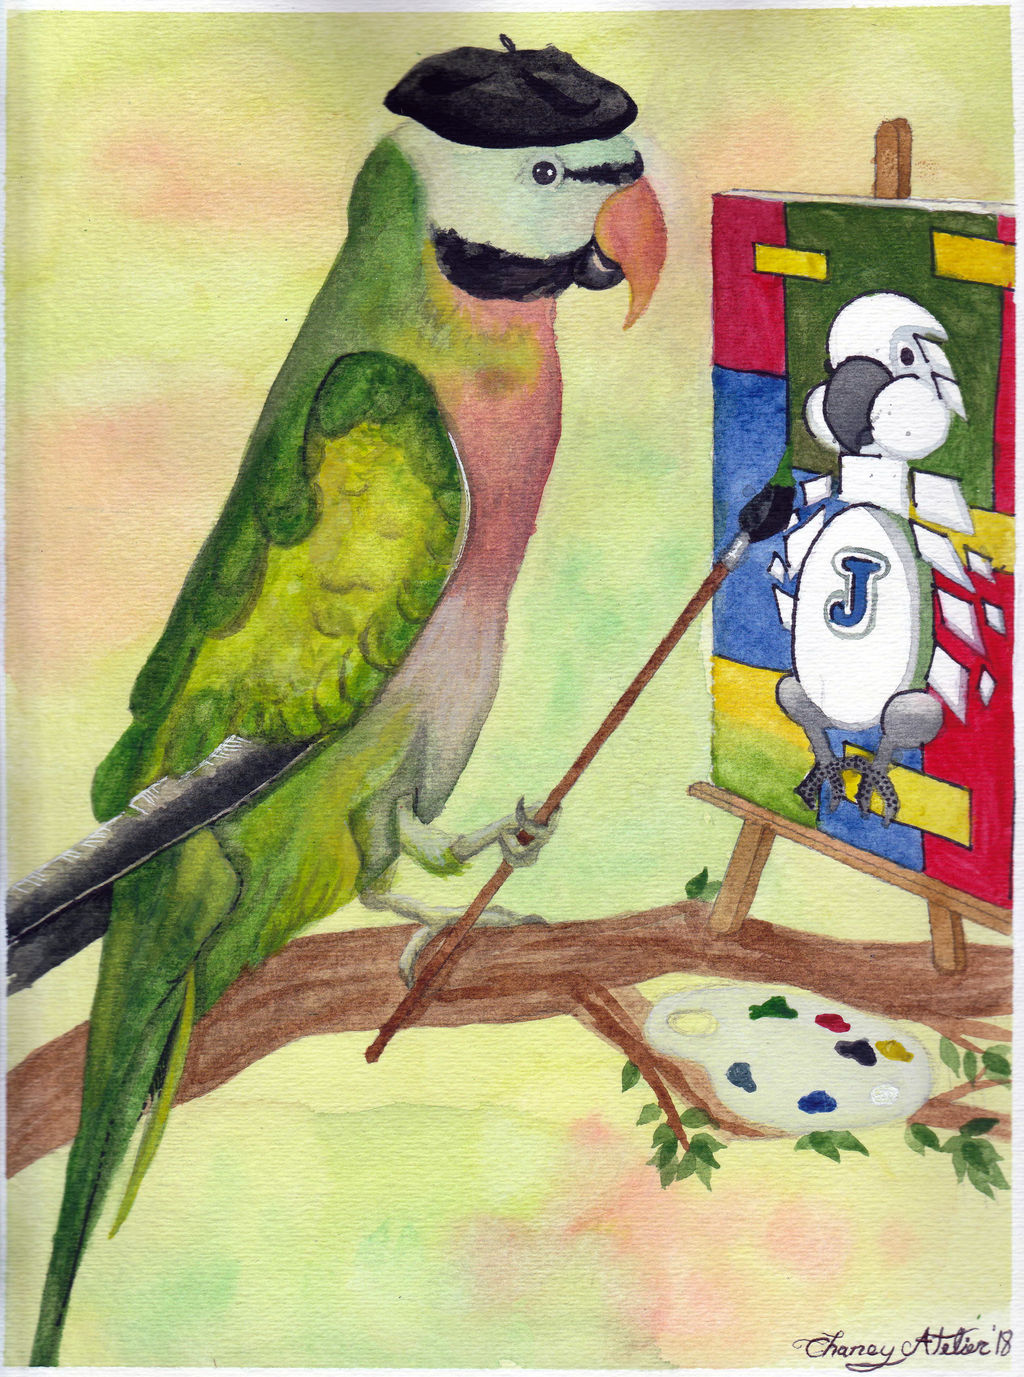 Picasso the Mustache Parakeet by Megal0don on DeviantArt